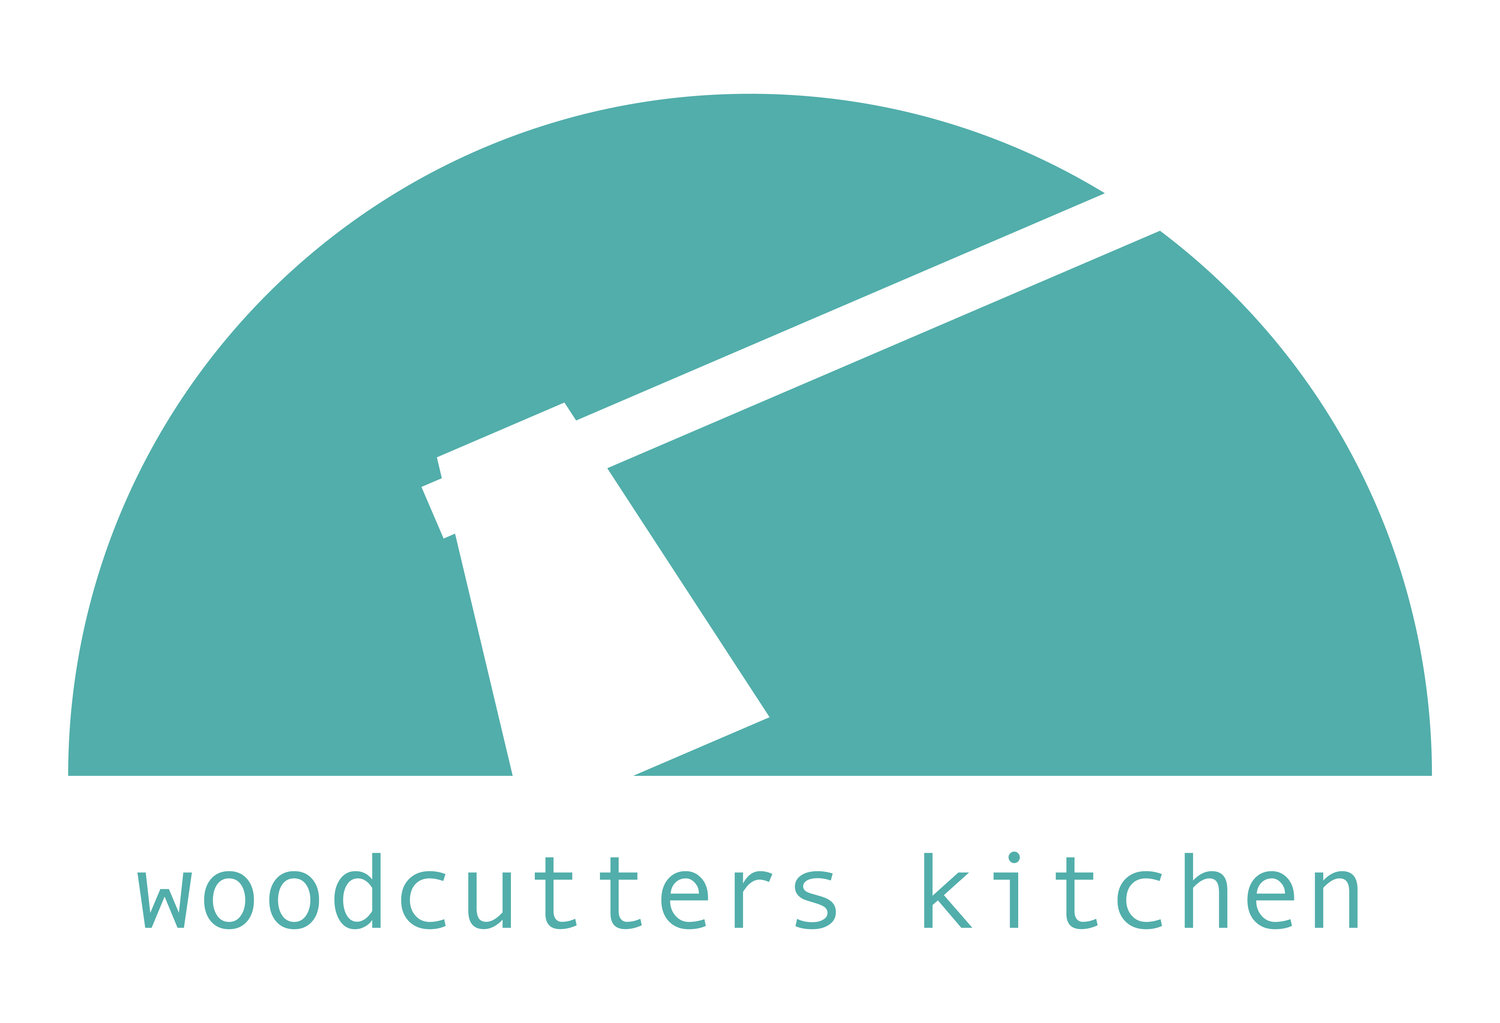 woodcutters kitchen